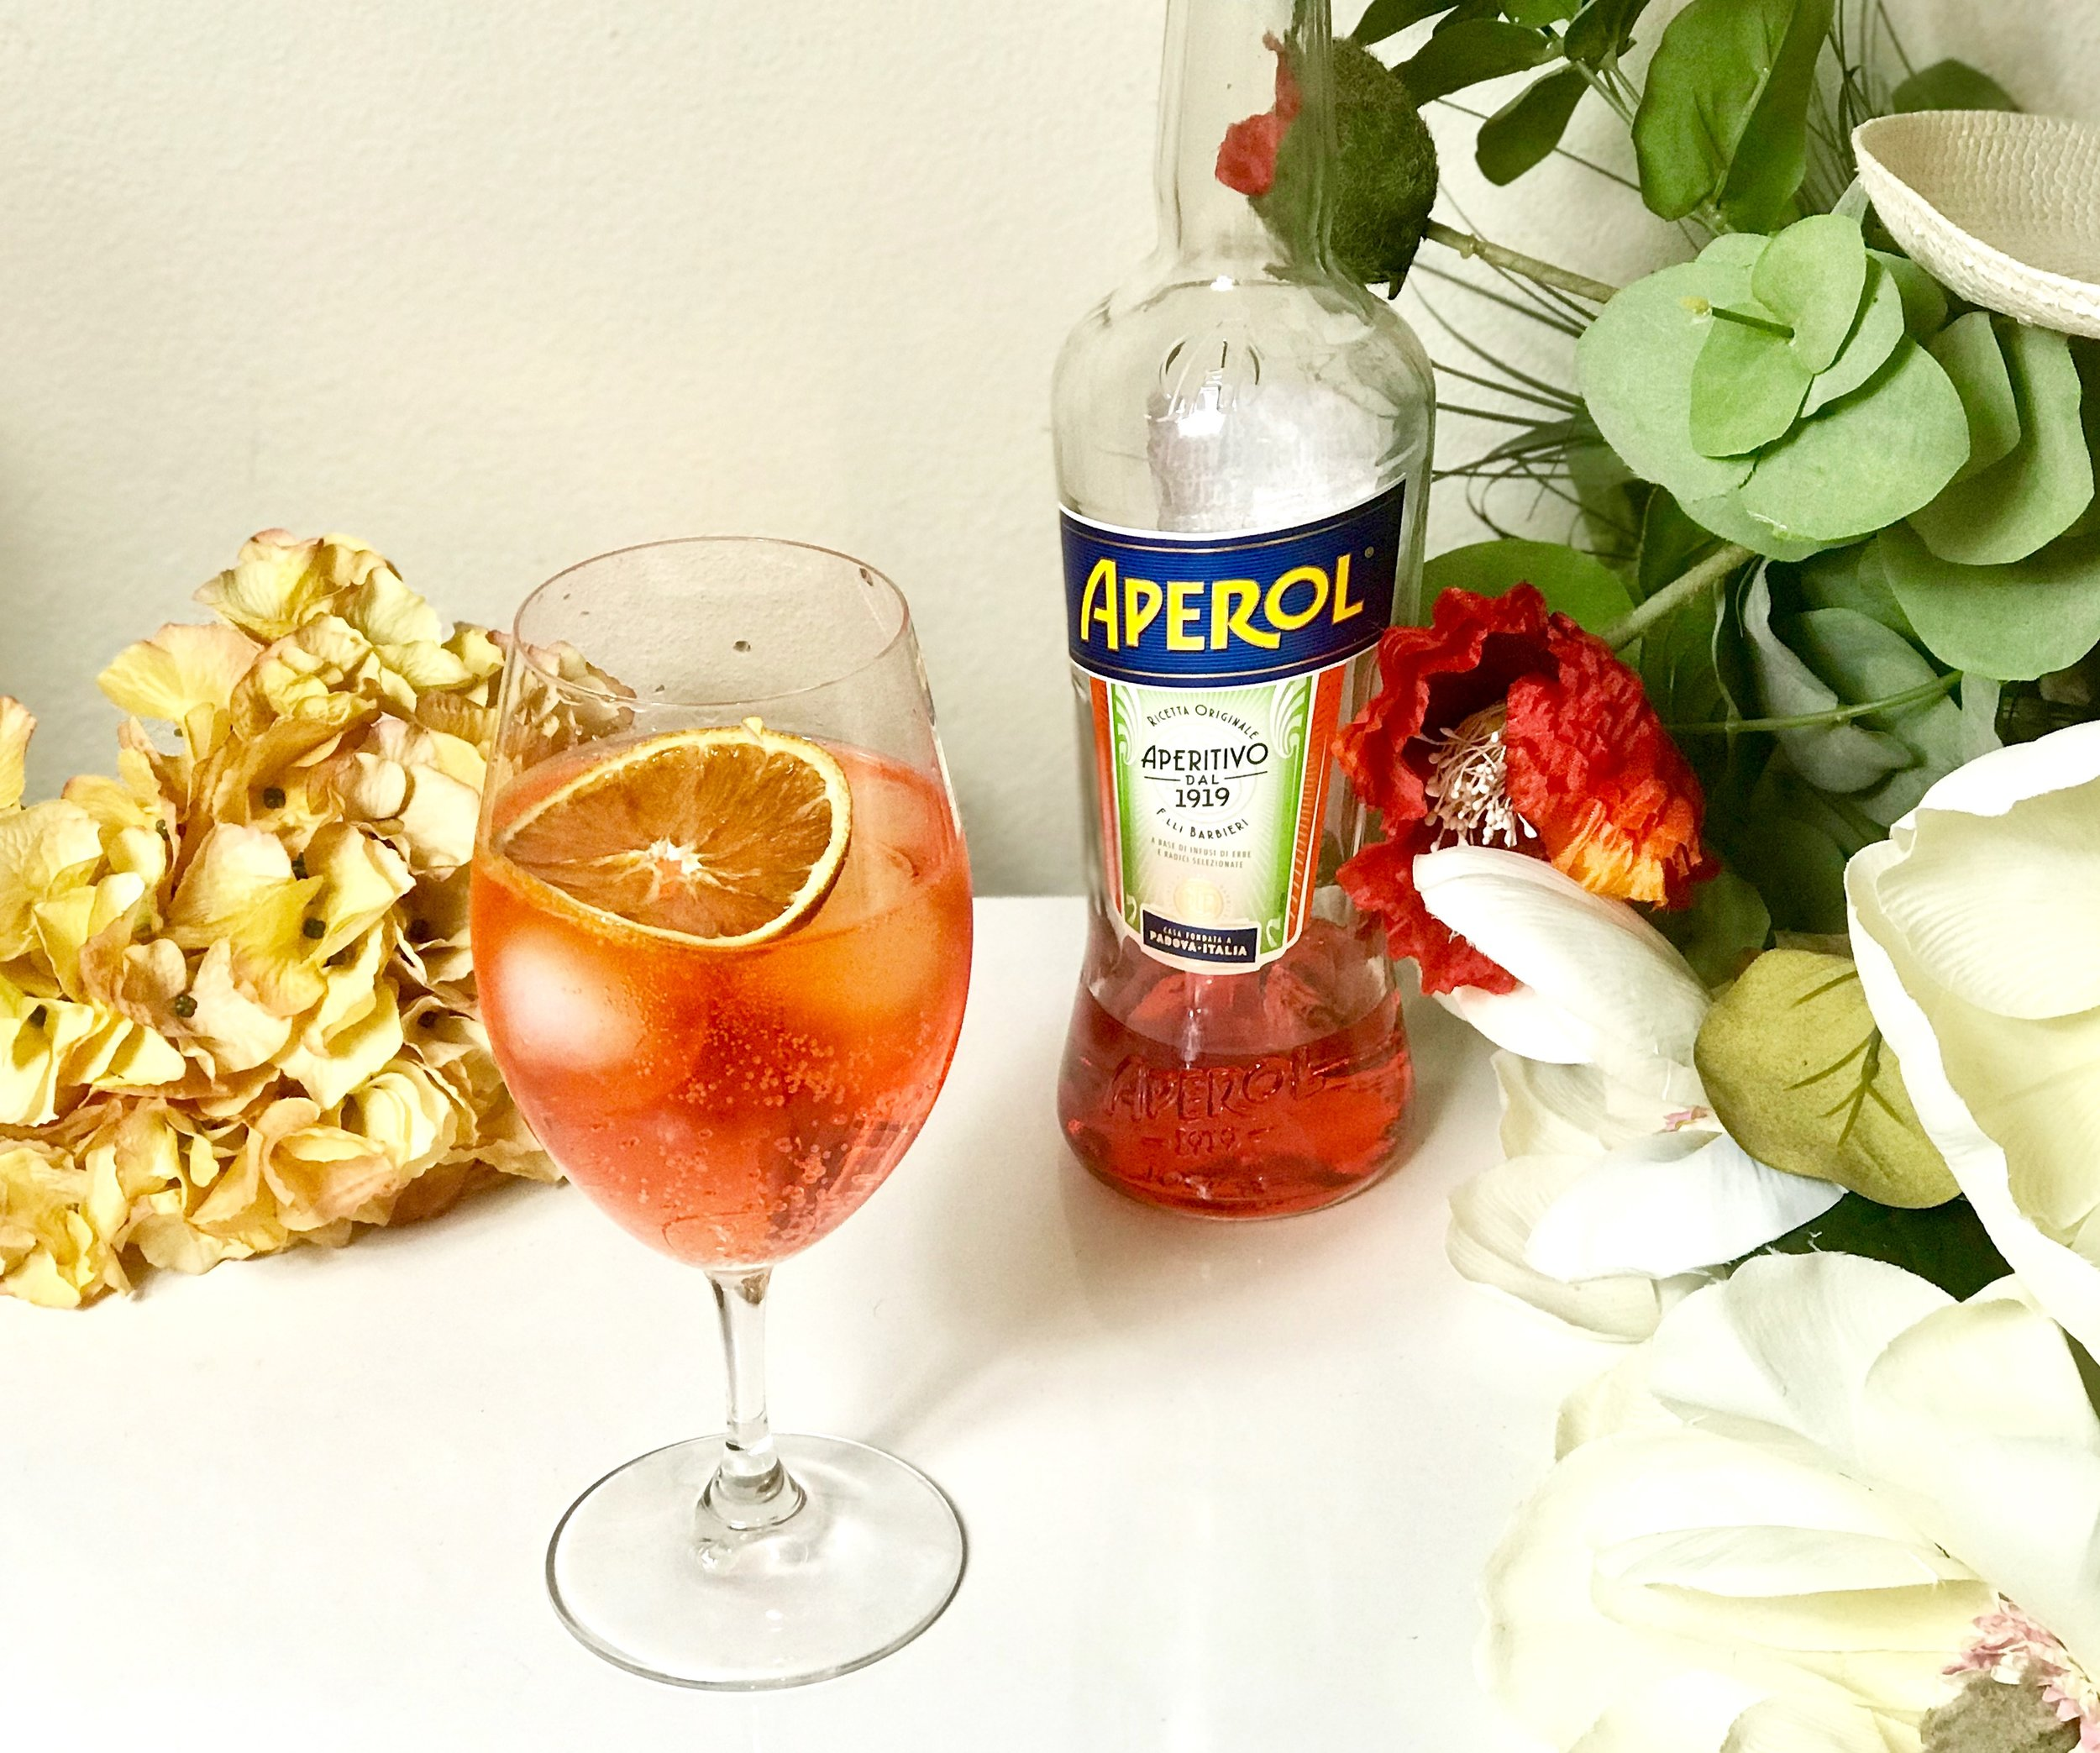 The Aperol Spritz - is it a bad drink? — COCKTAIL CO